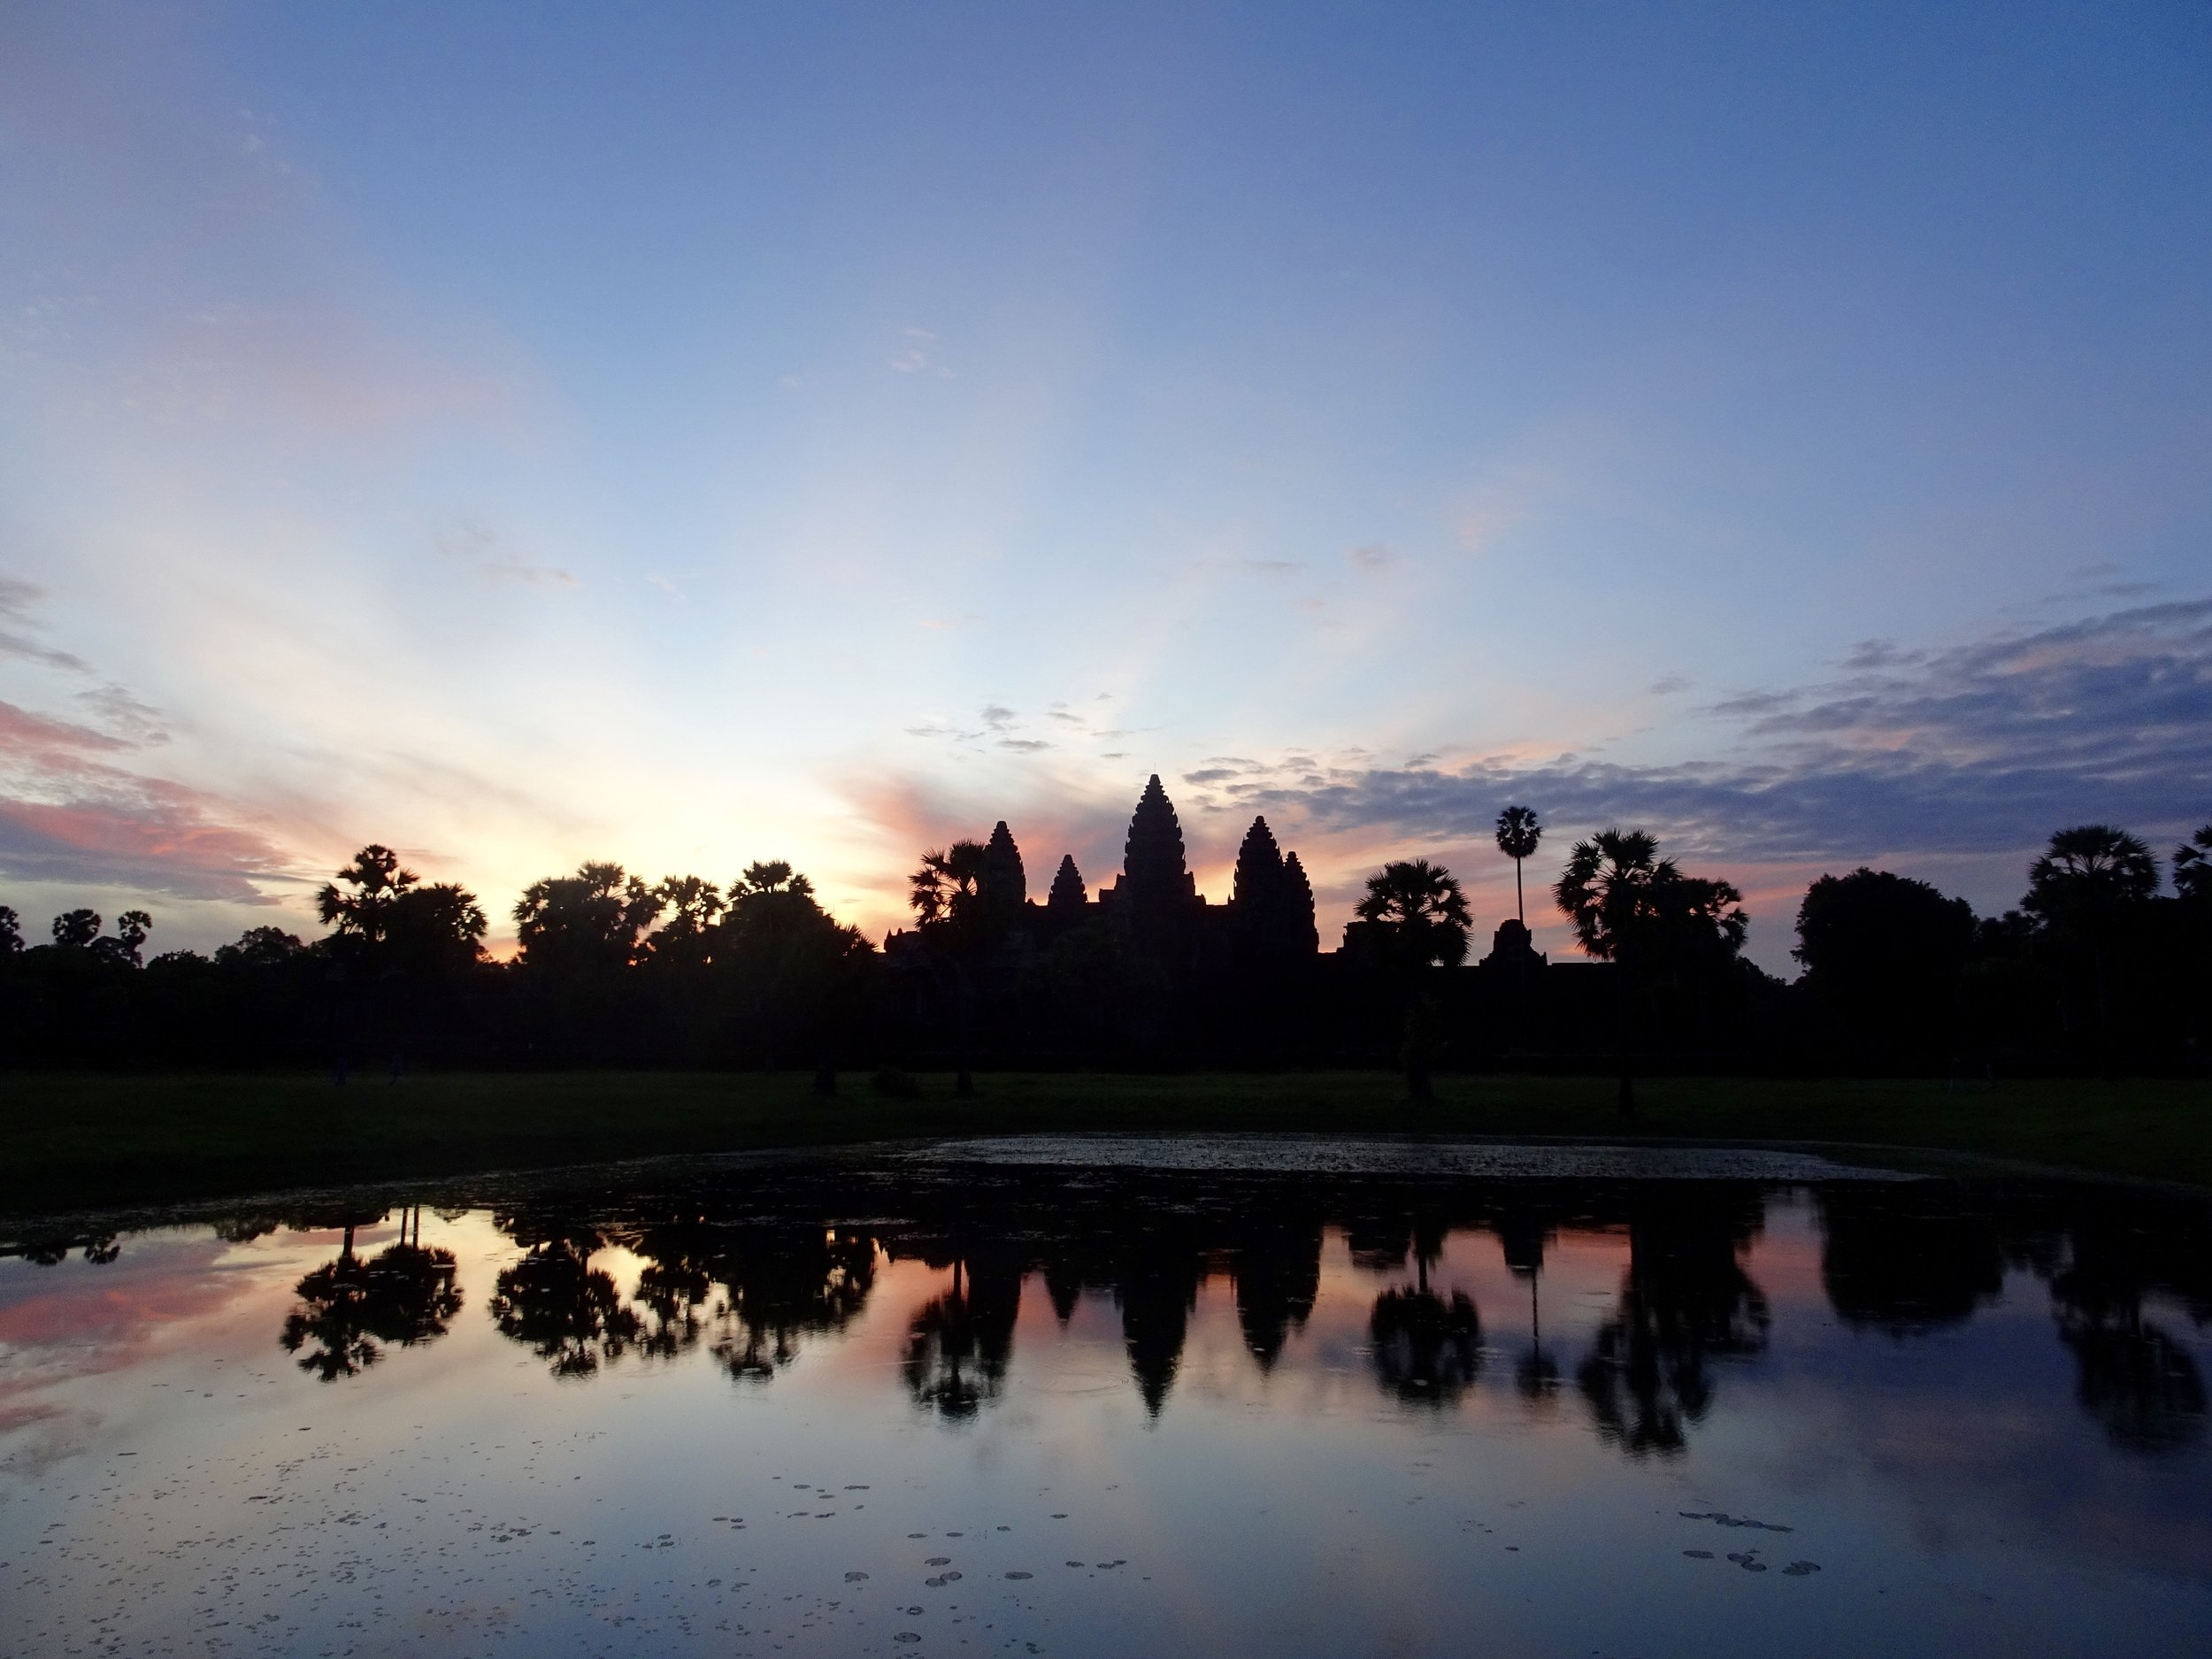 Angkor Wat, Cambodia - See the sun rise over Angkor Wat and cycle through rice patties in one of the world's most spectacular archeological sites.